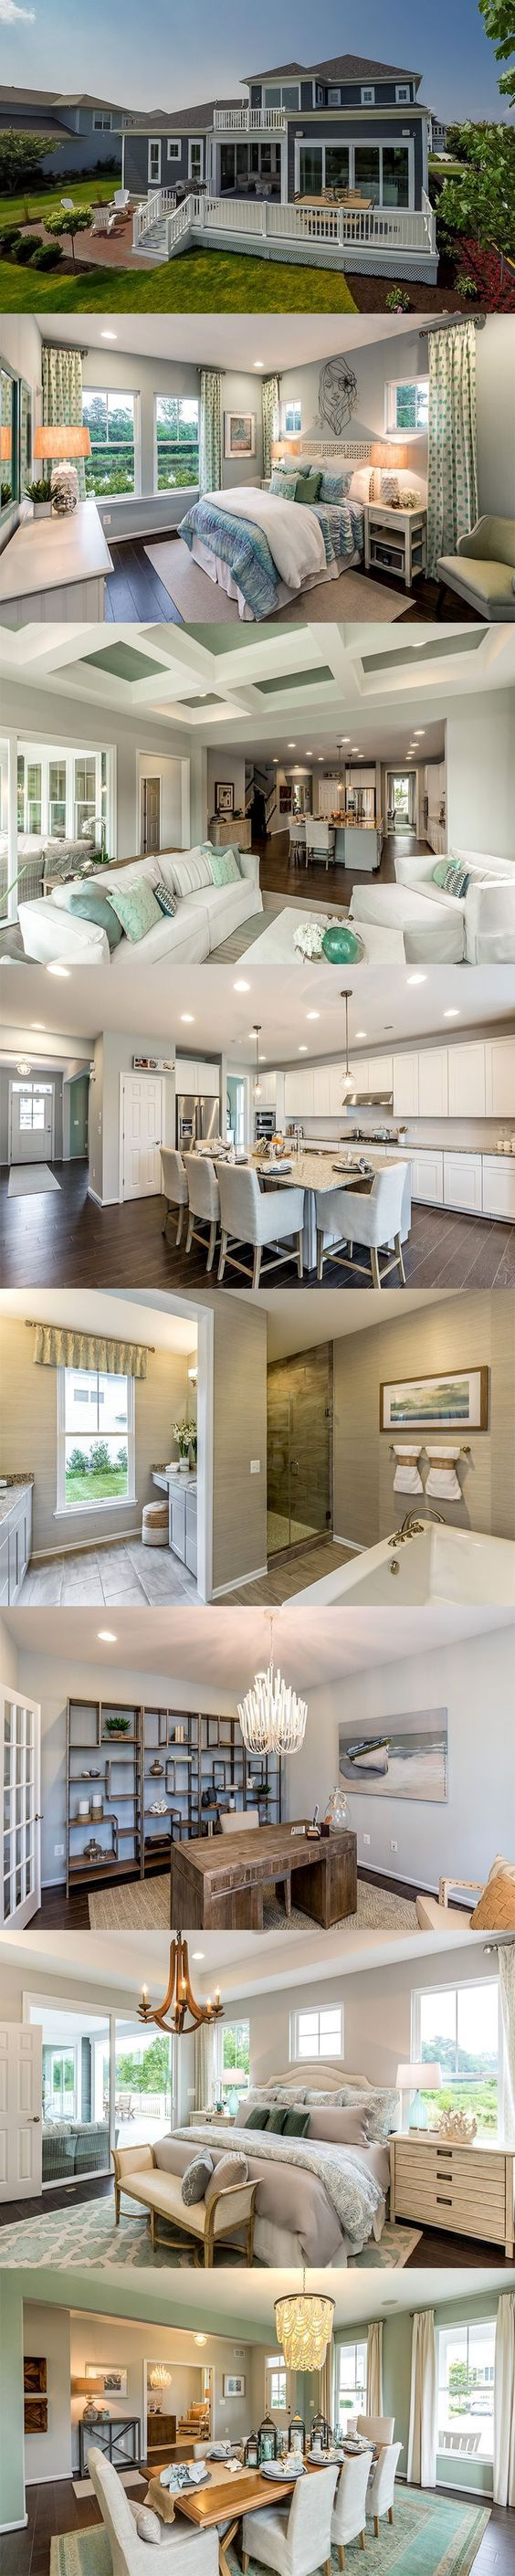 2017 ubmicc com ideas home decor rutenberg home plans picture database - Looking For Decor Inspiration Pulte S Pinterest Page Is Your Go To Resource For All